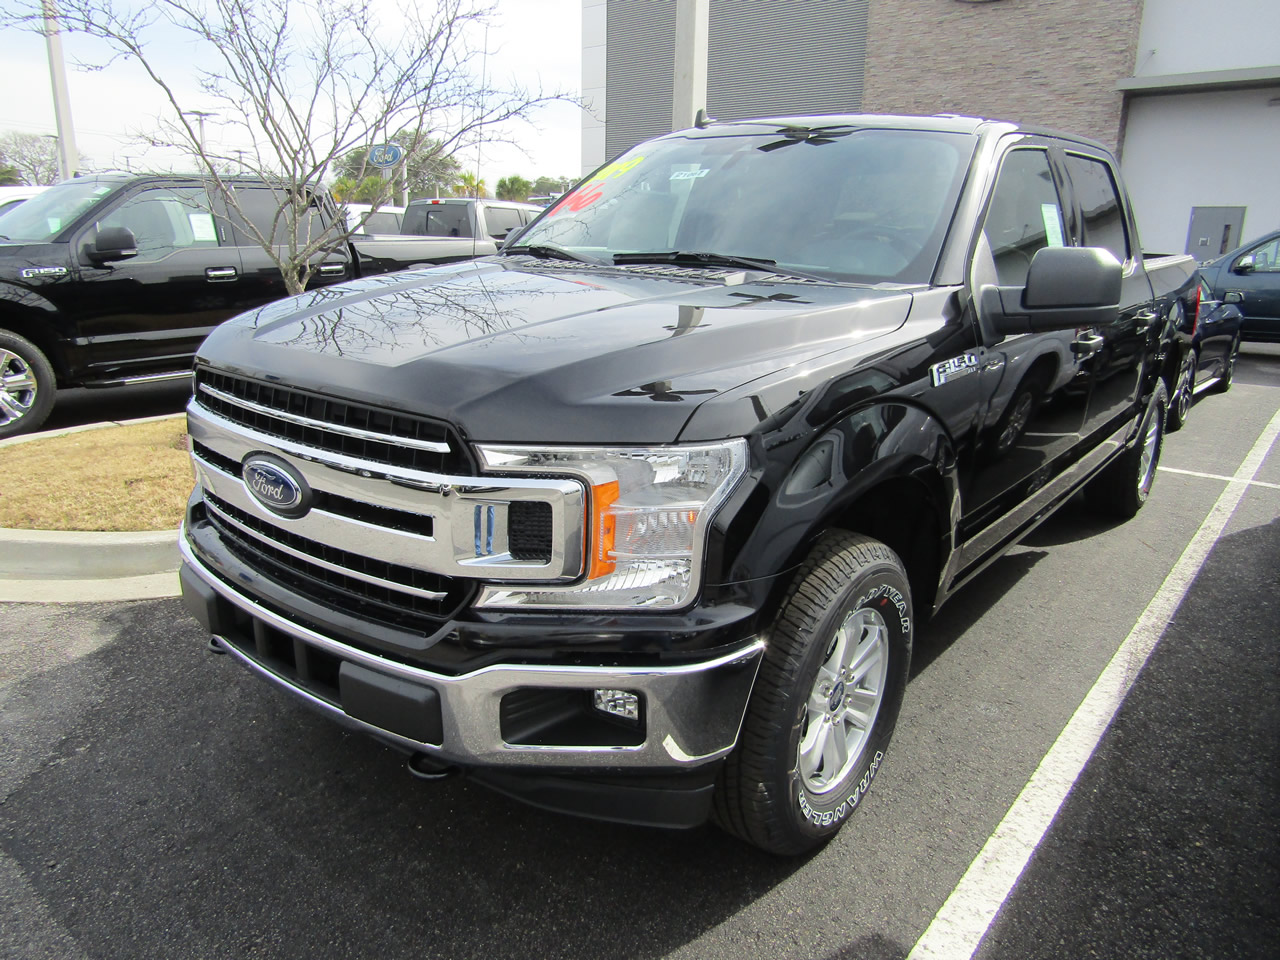 2019 Ford F-150 XLT SuperCrew 4WD Dick Smith Ford serving Columbia, Sumter, Orangeburg, West Columbia, Lexington, Newberry, Lugoff SC, Selling new Ford cars and trucks and used vehciles in Columbia, SC